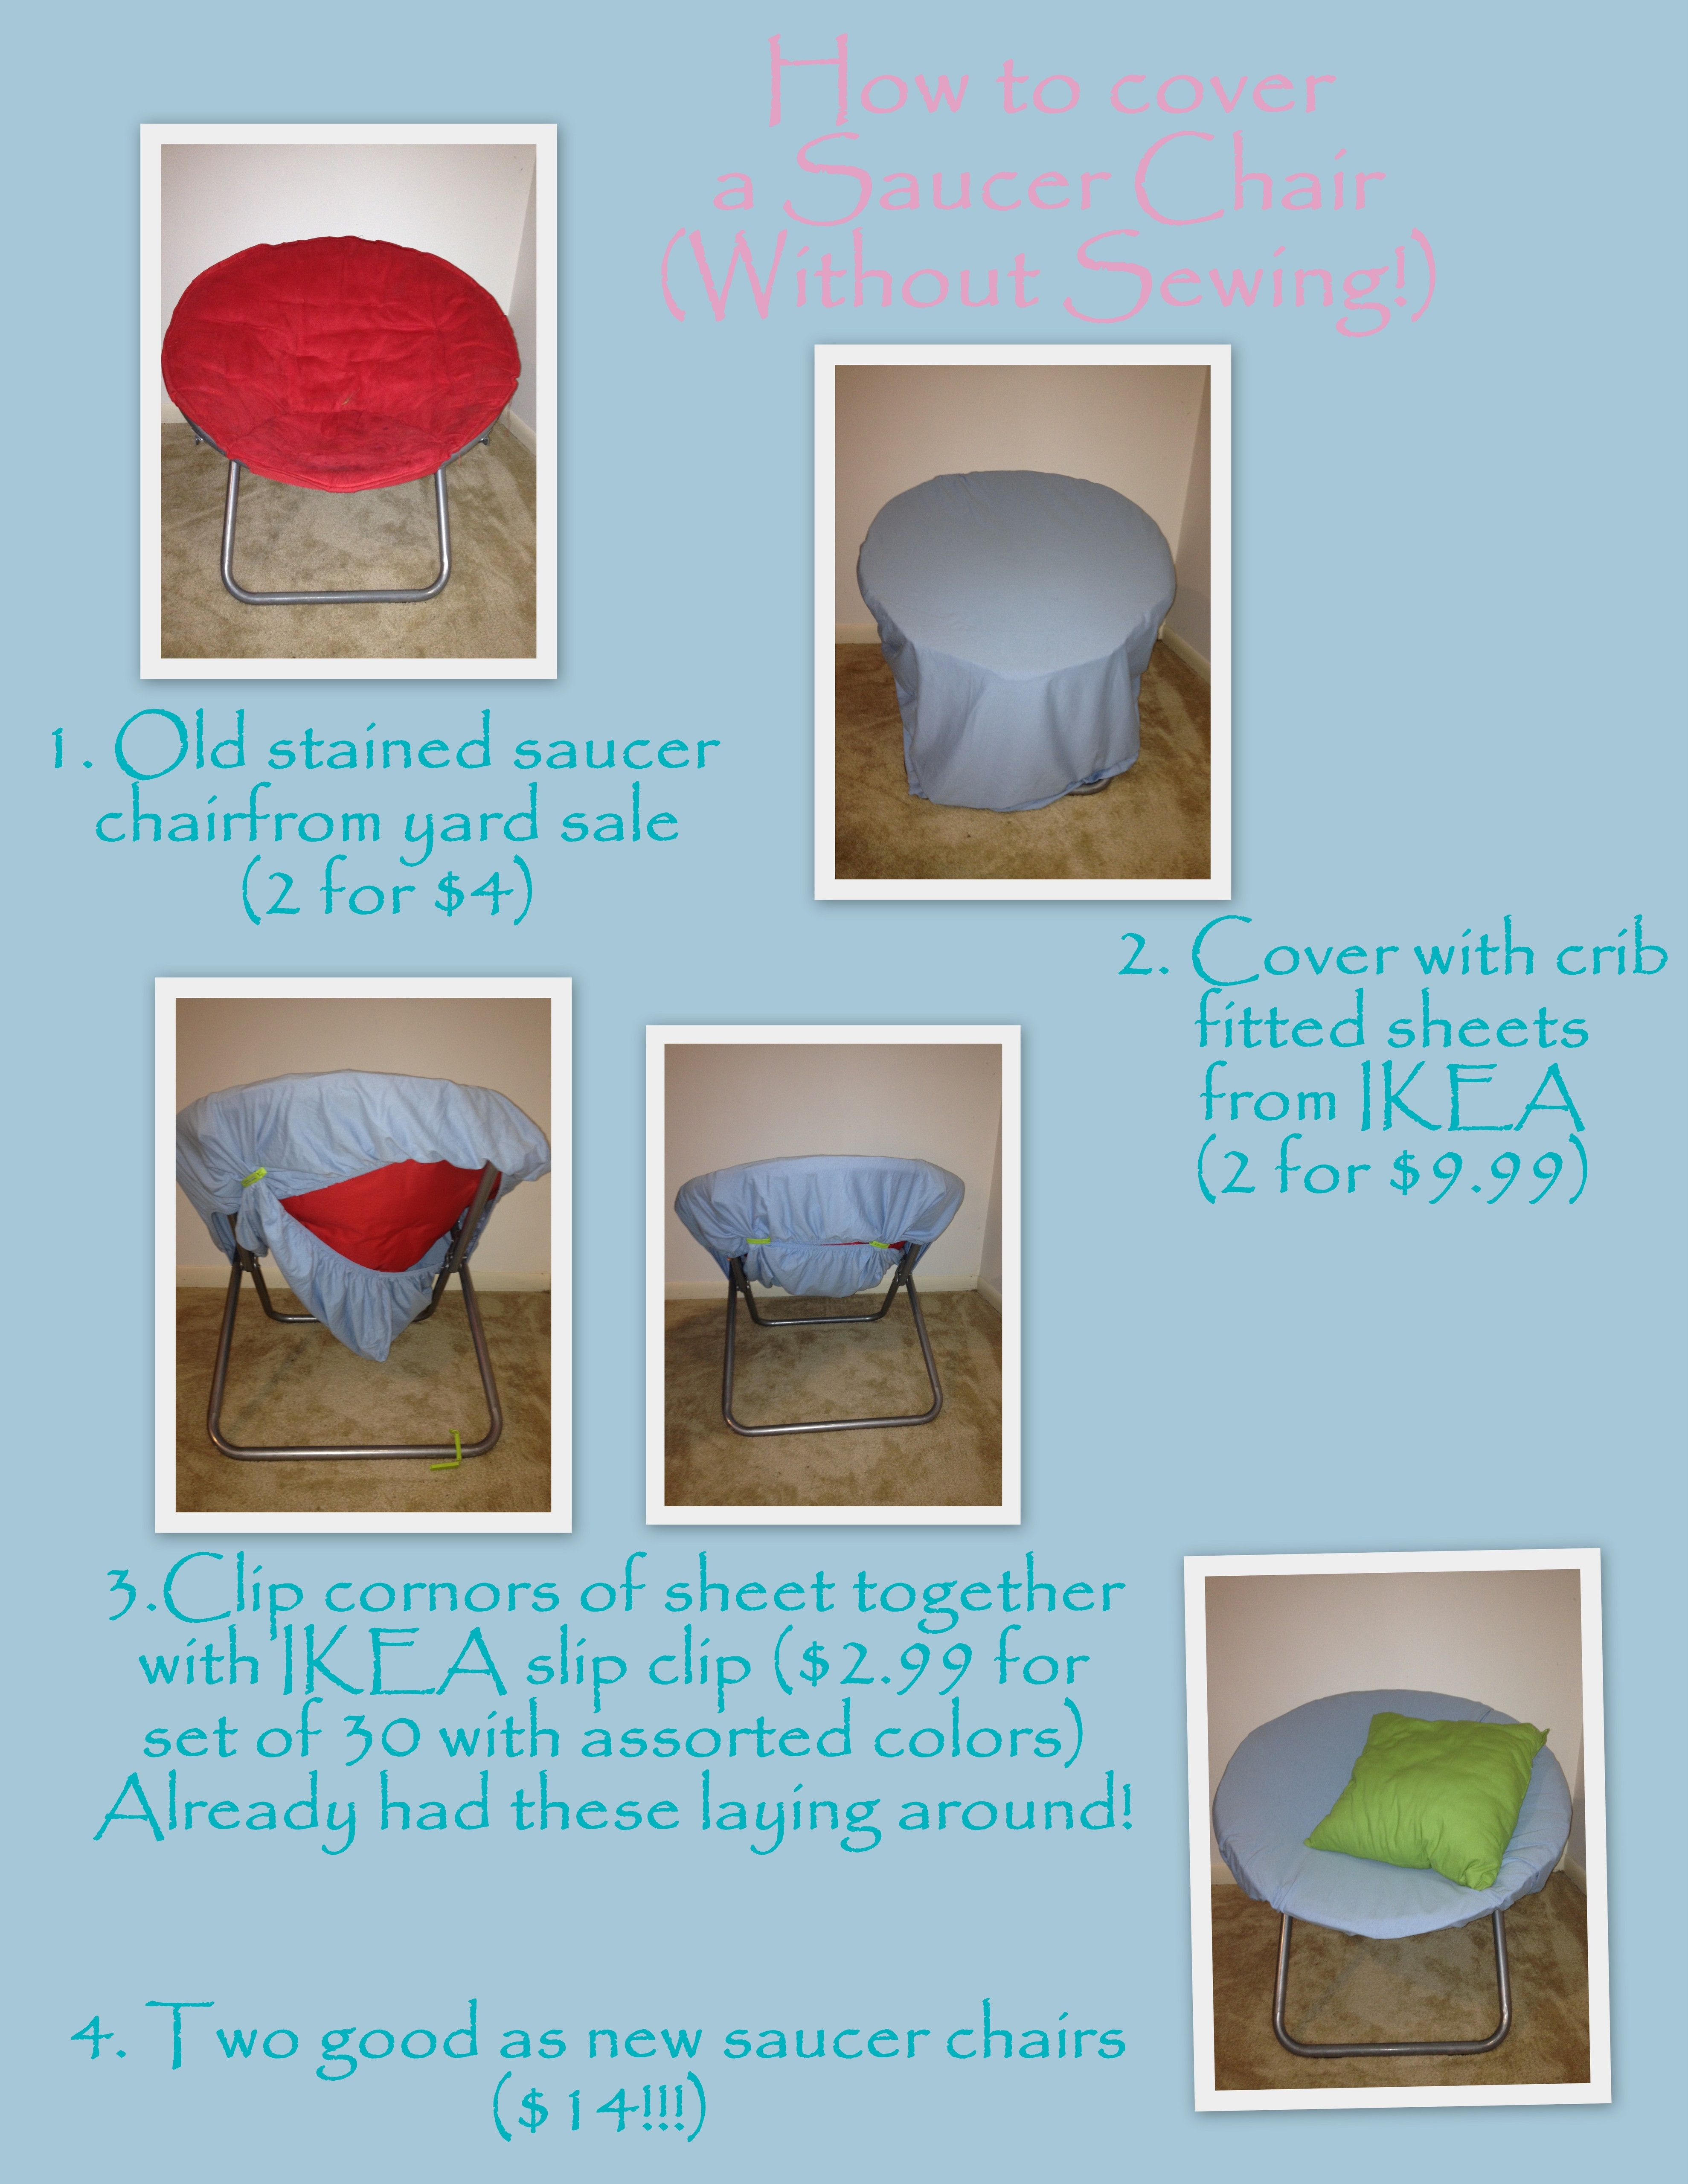 Groovy How To Cover An Old Saucer Chair Without Sewing Finally Ocoug Best Dining Table And Chair Ideas Images Ocougorg